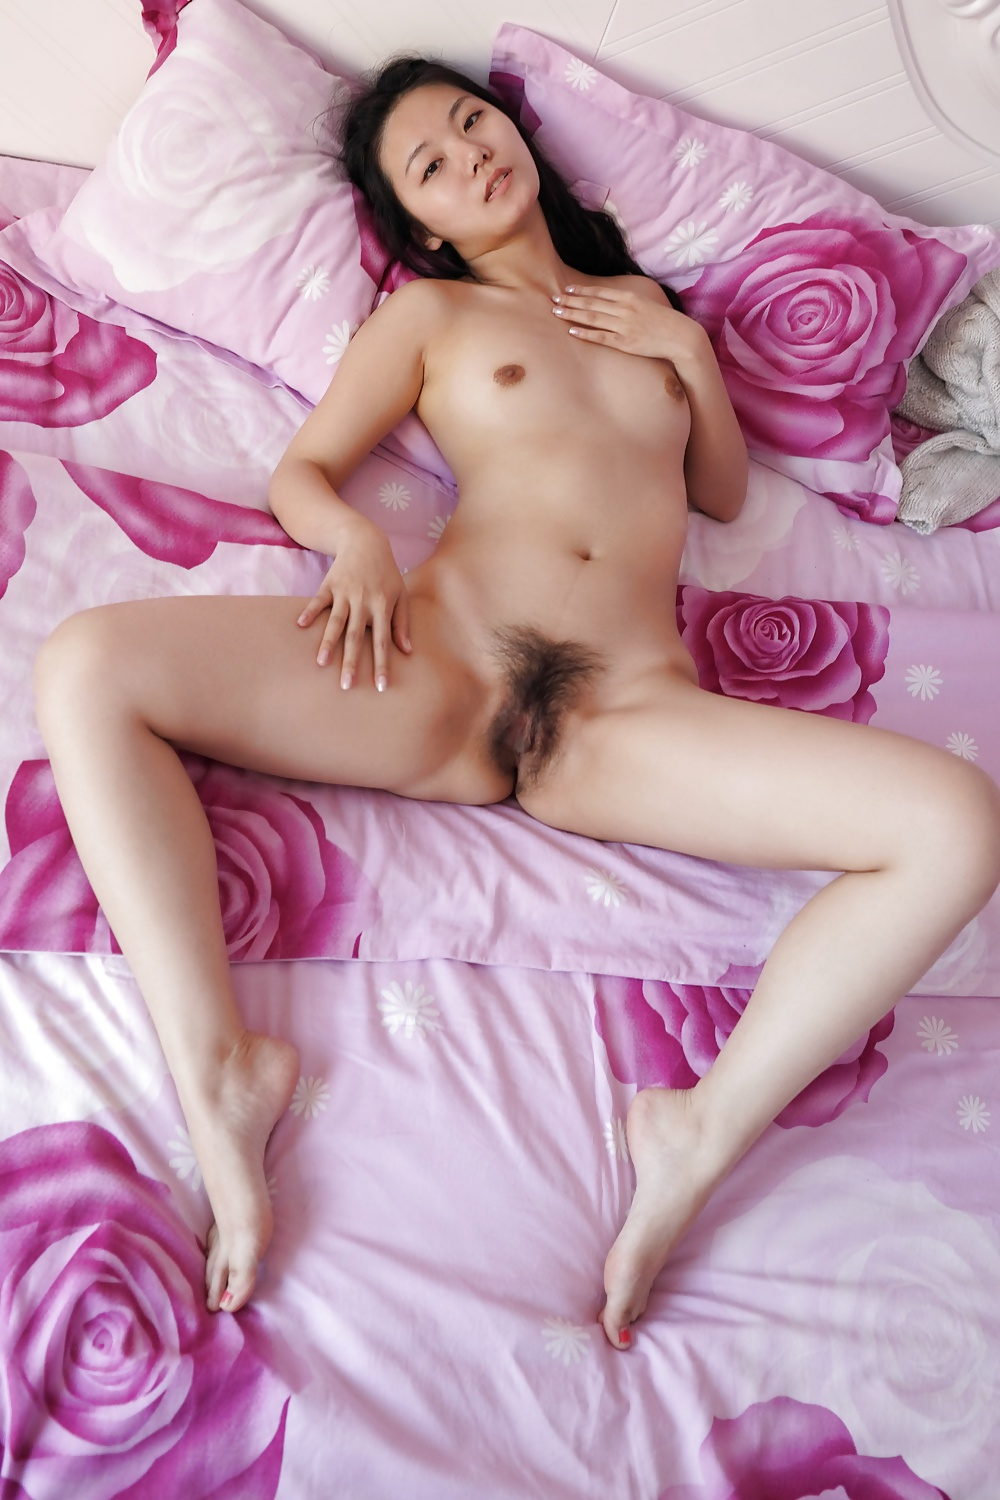 nude amateur asian